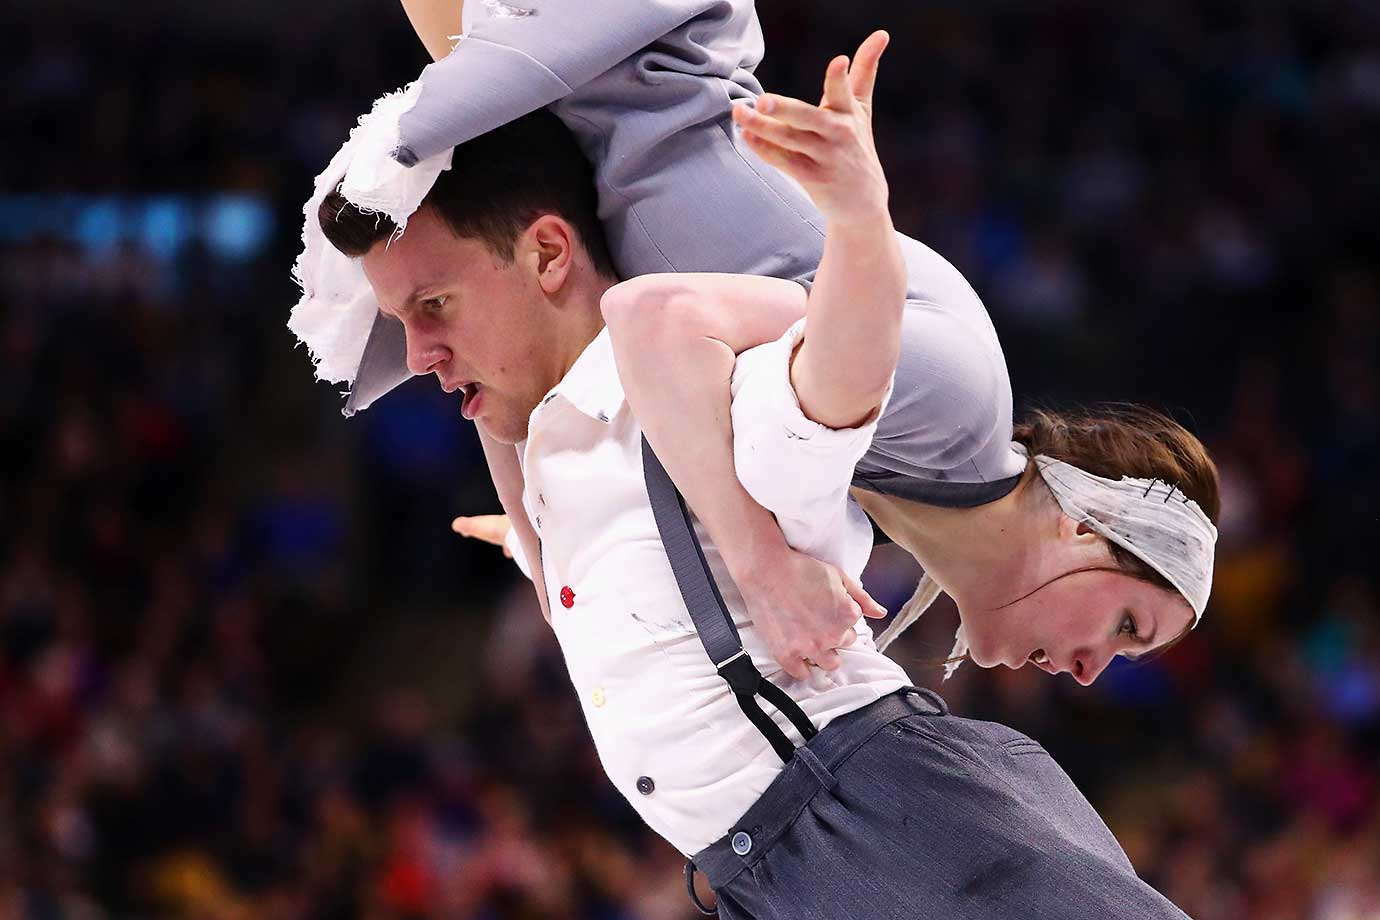 Charlene Guignard and Marco Fabbri of Italy in an unusual position at the World Figure Skating Championships.